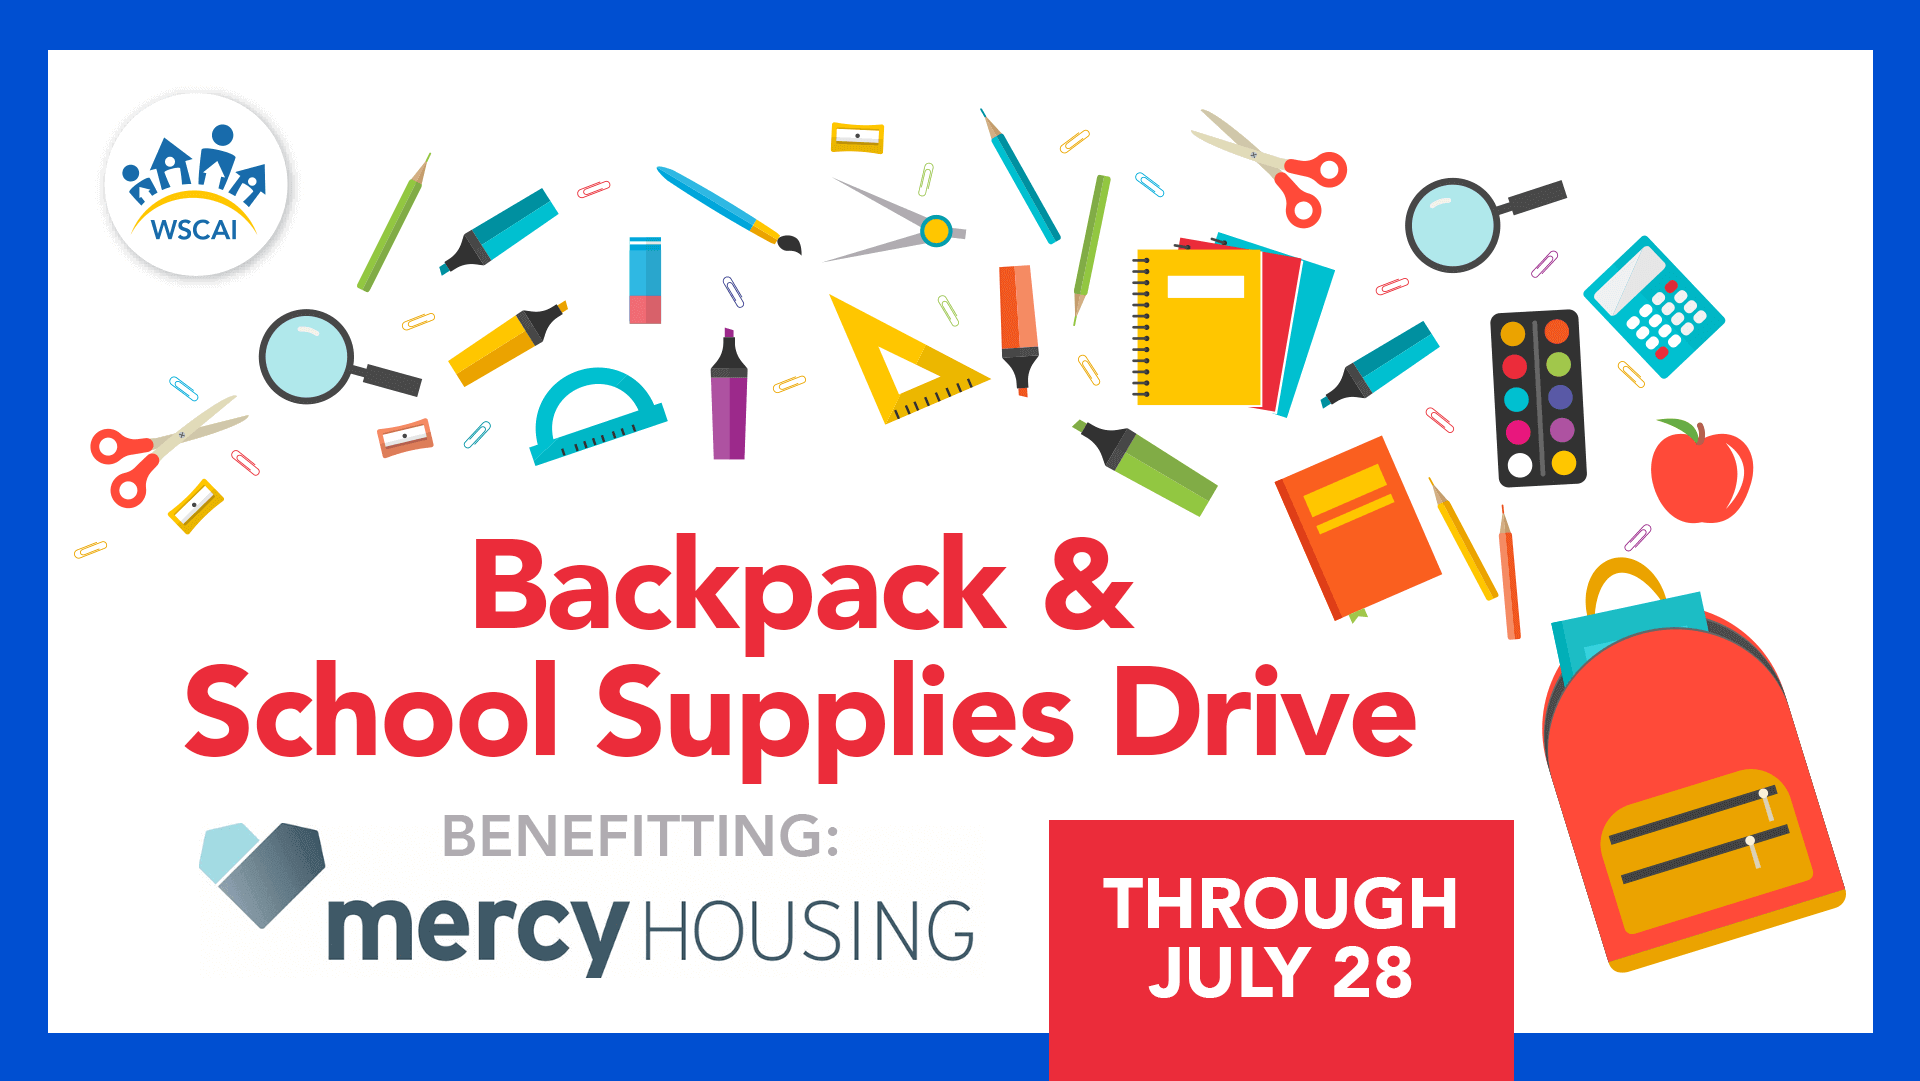 Backpack & School Supplies Drive - Benefitting Mercy Housing NW - Through July 28